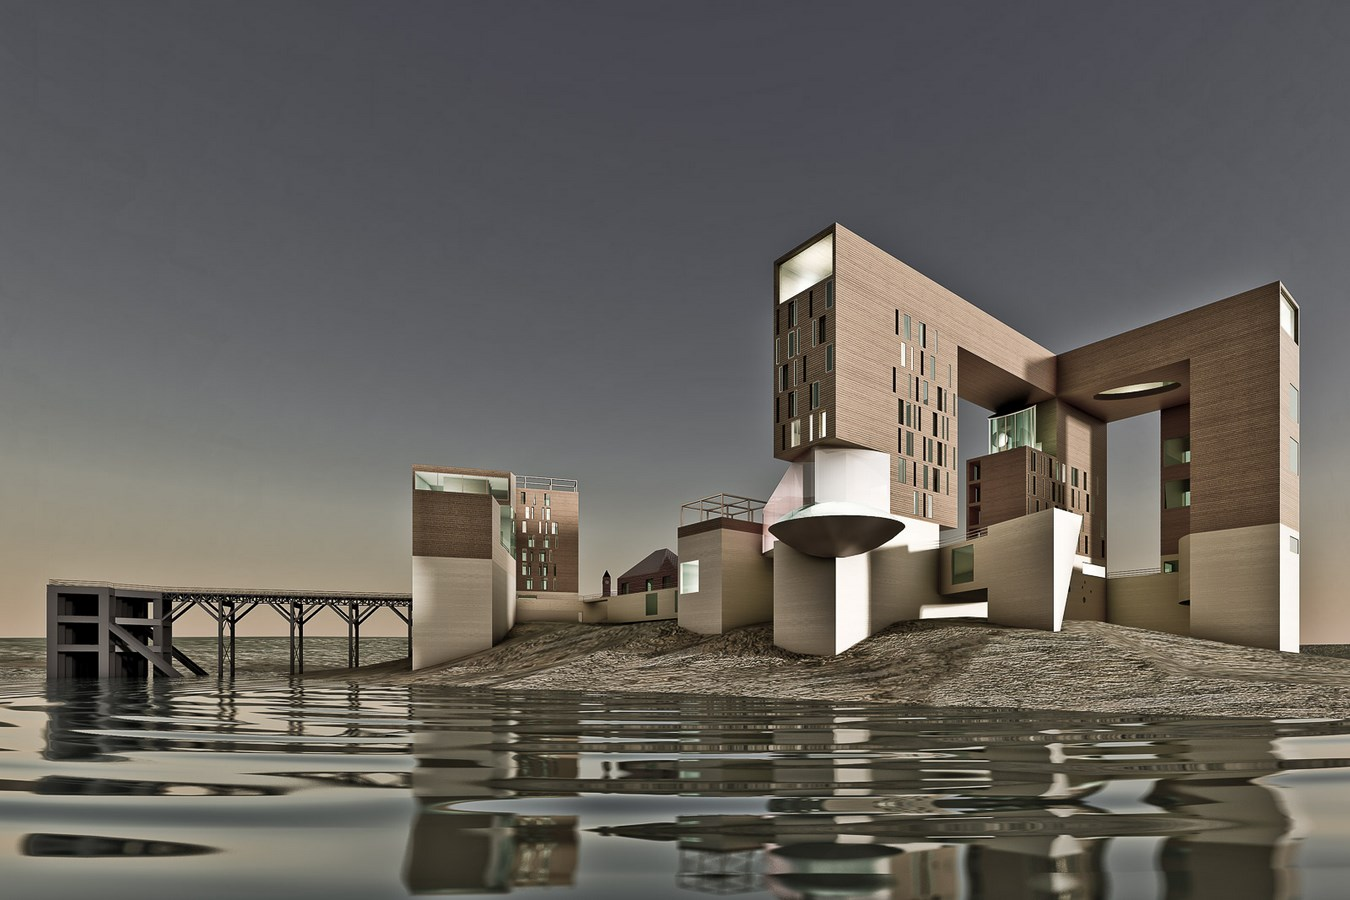 10 Projects of Antonino Cardillo every Architect must visit! - Birnbeck Island - Sheet2